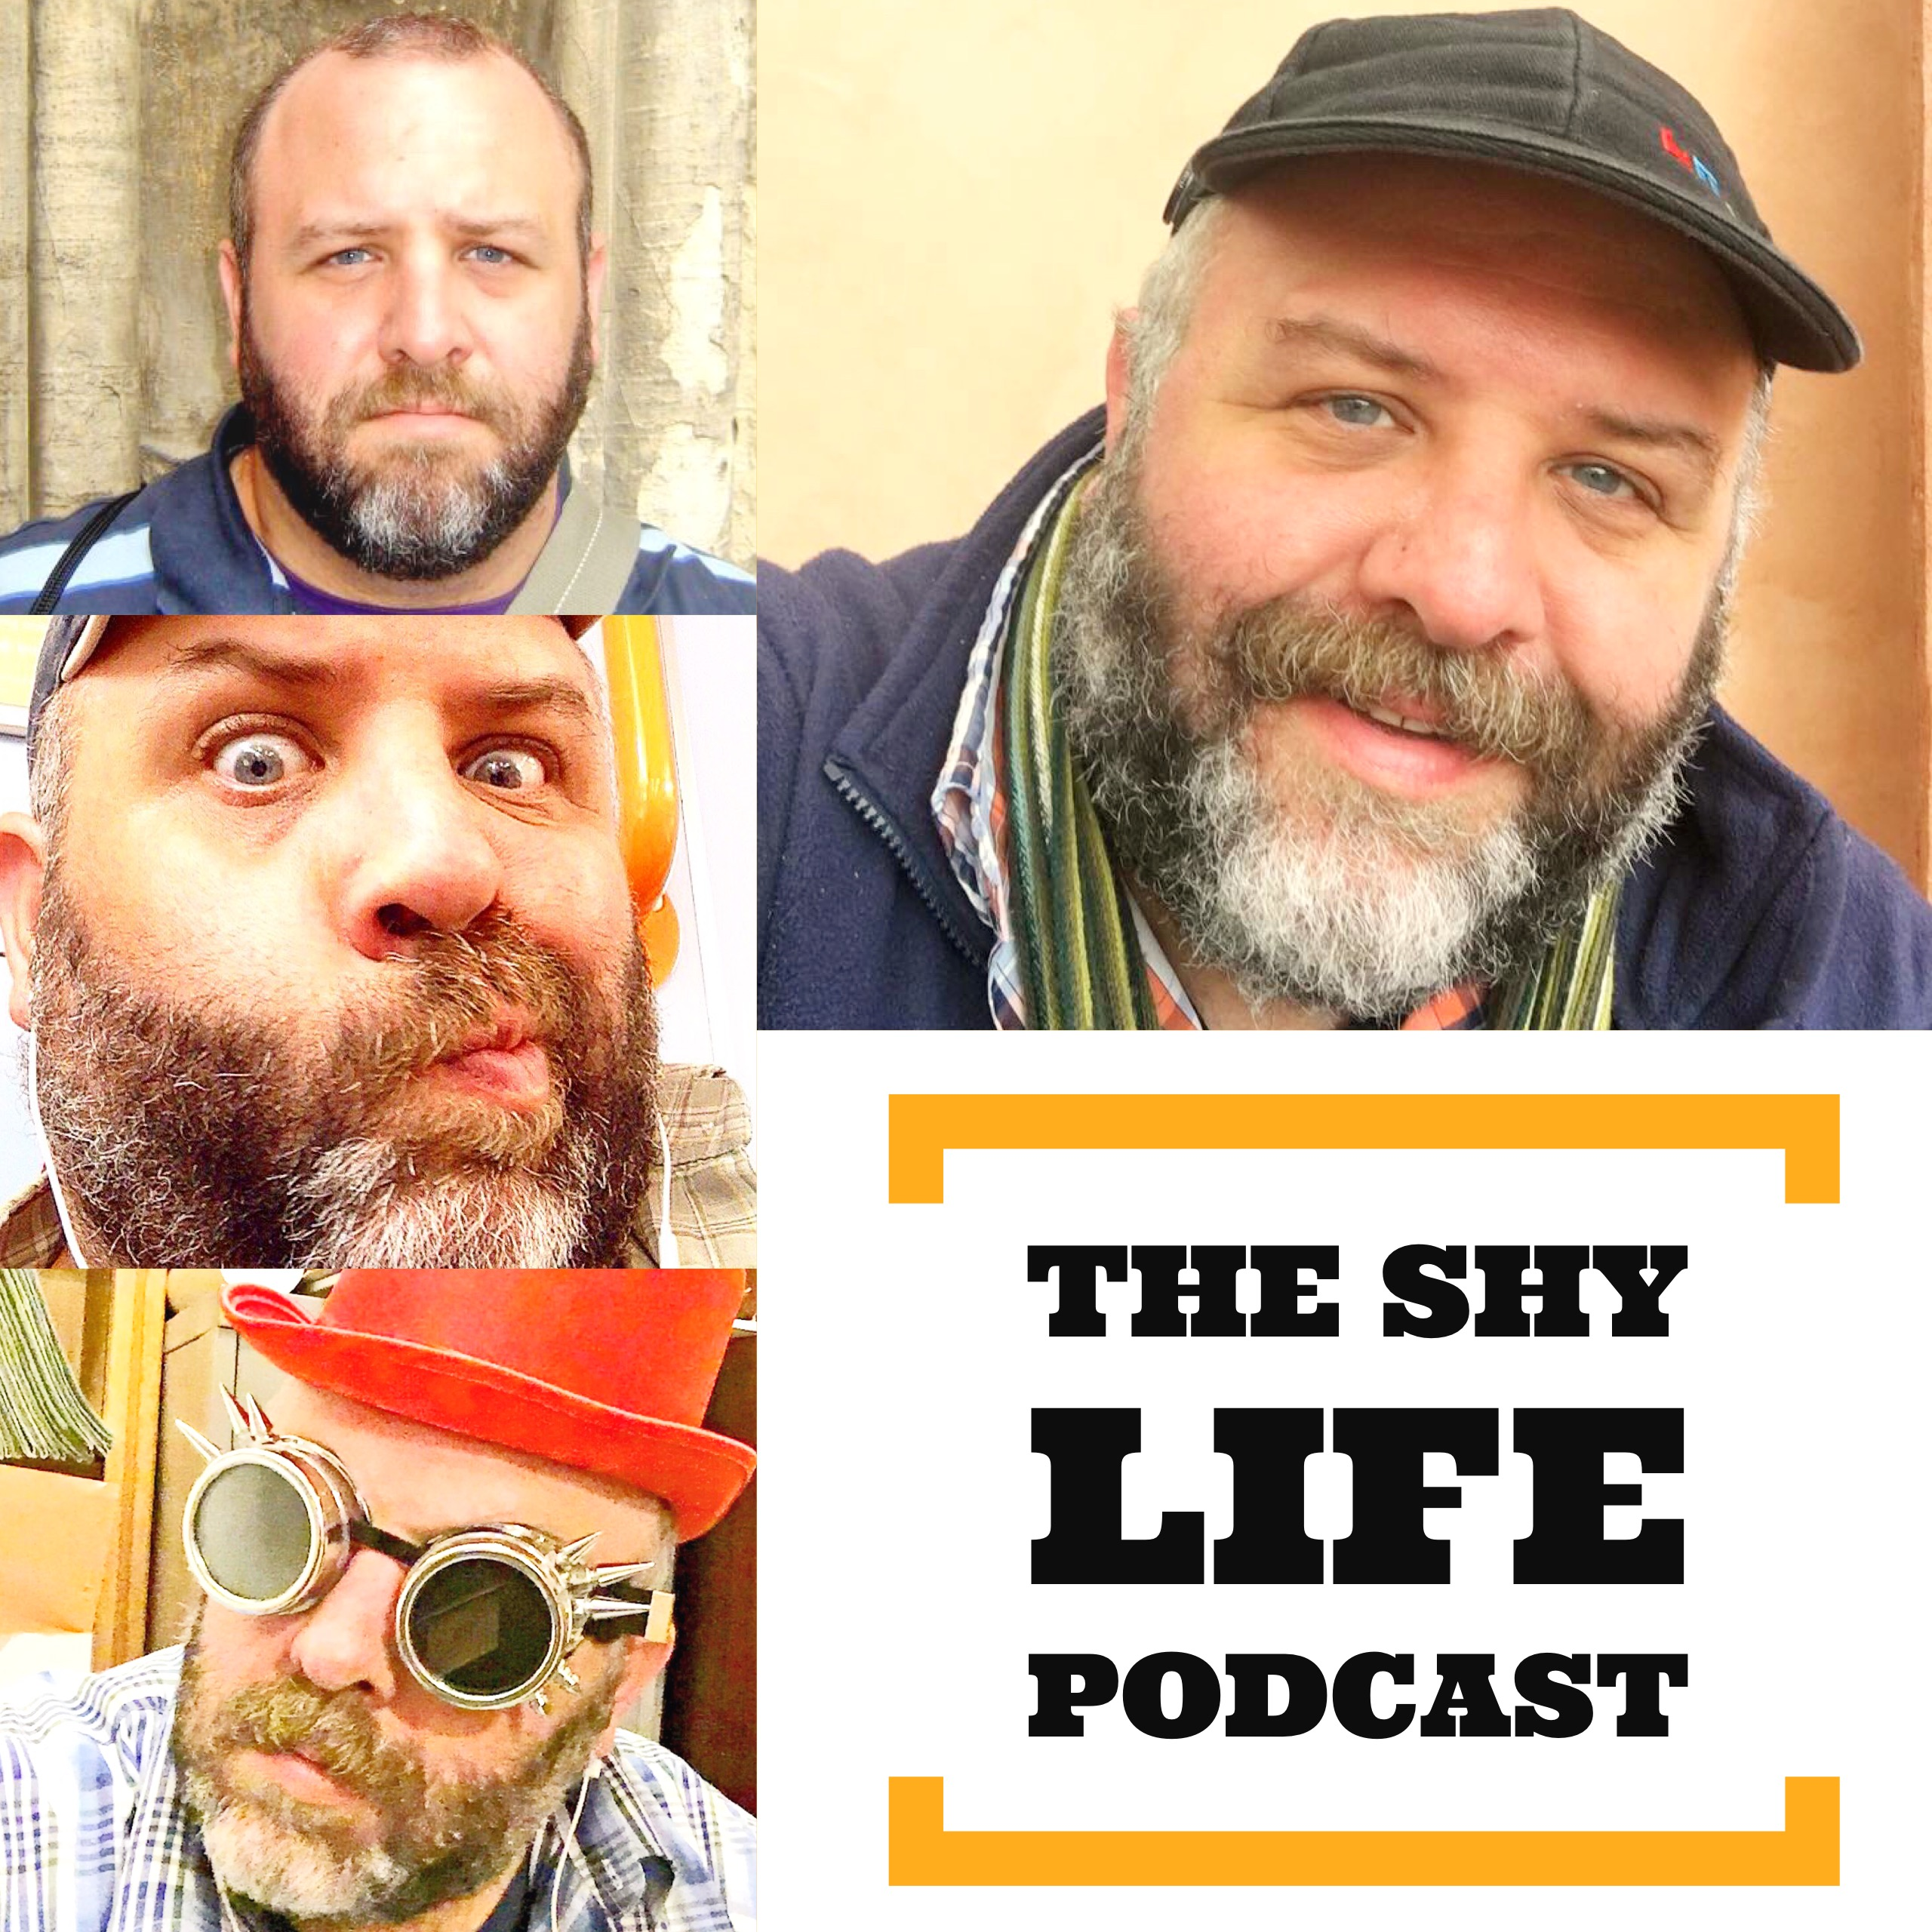 THE SHY LIFE PODCAST - 245: A BAD CASE OF THE PICKLE HOLLOWS!